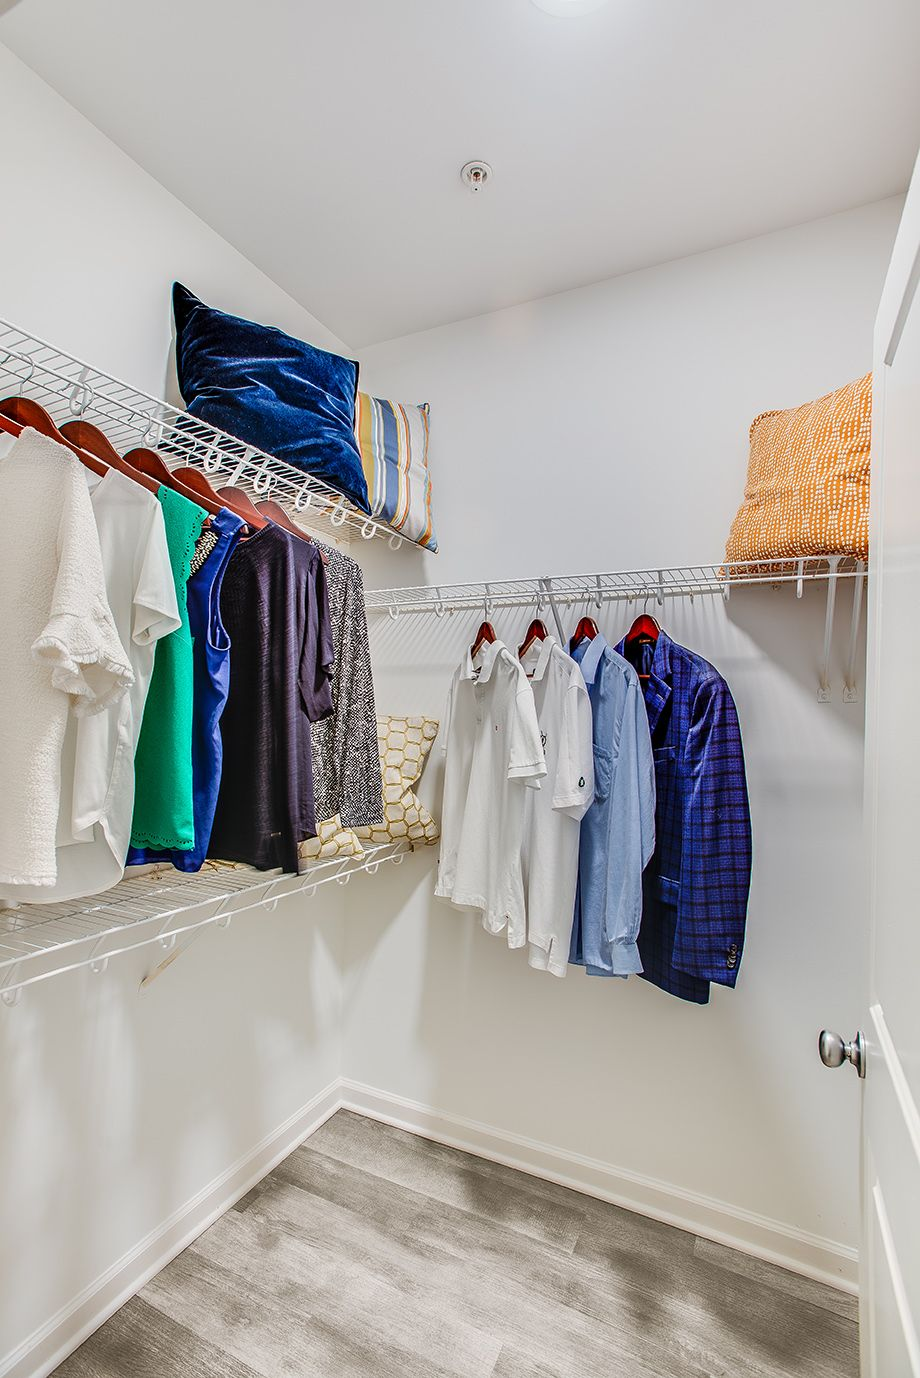 ... VA Walk In Closet At Camden Dulles Station Apartments In Herndon, ...